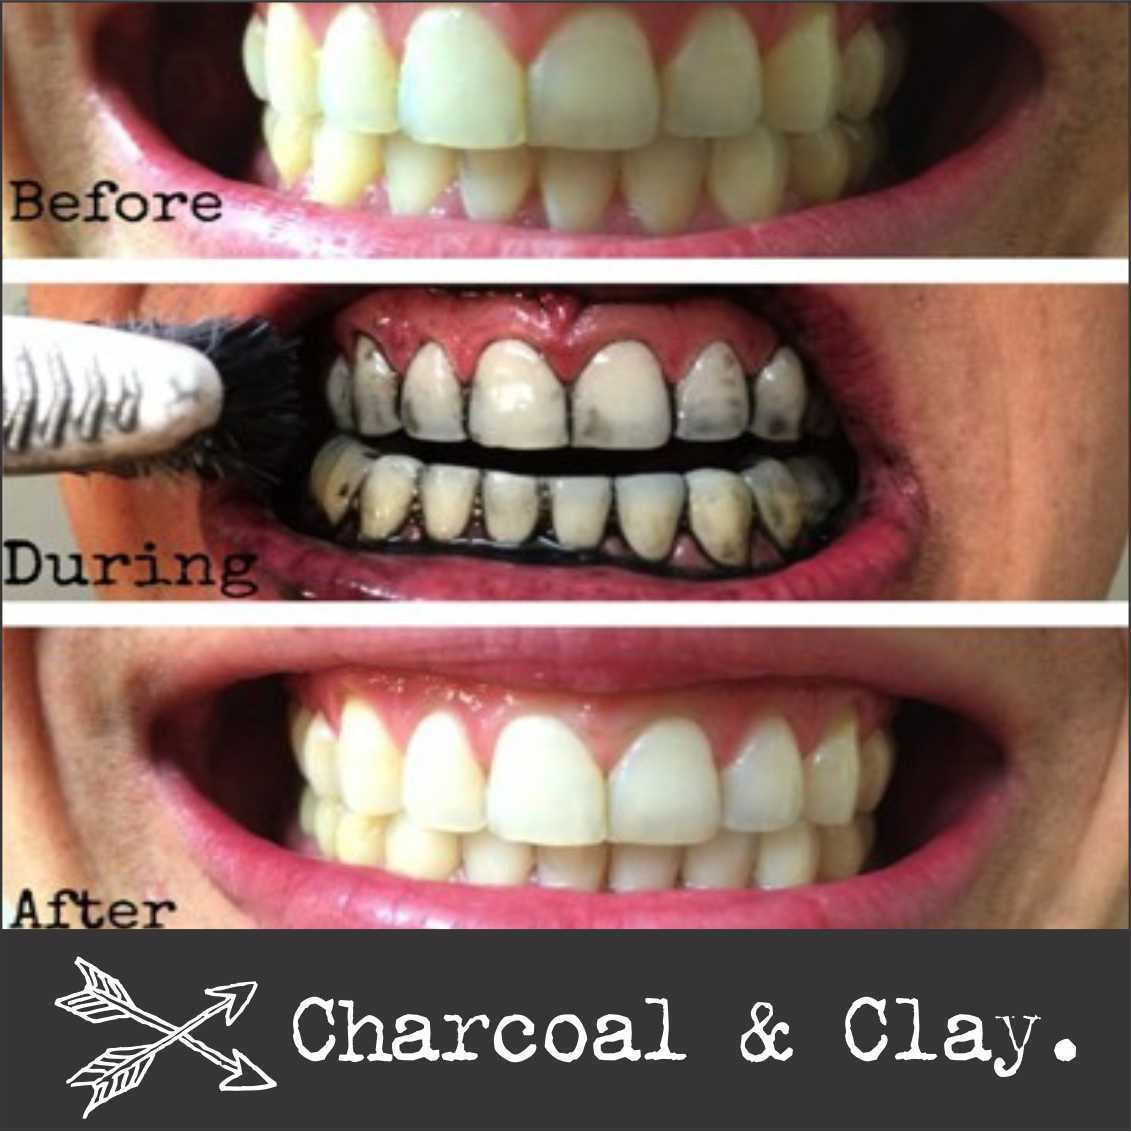 f1b5962a240 100% PURE ACTIVATED CHARCOAL POWDER Teeth Whitening Detox Mask + mor ...